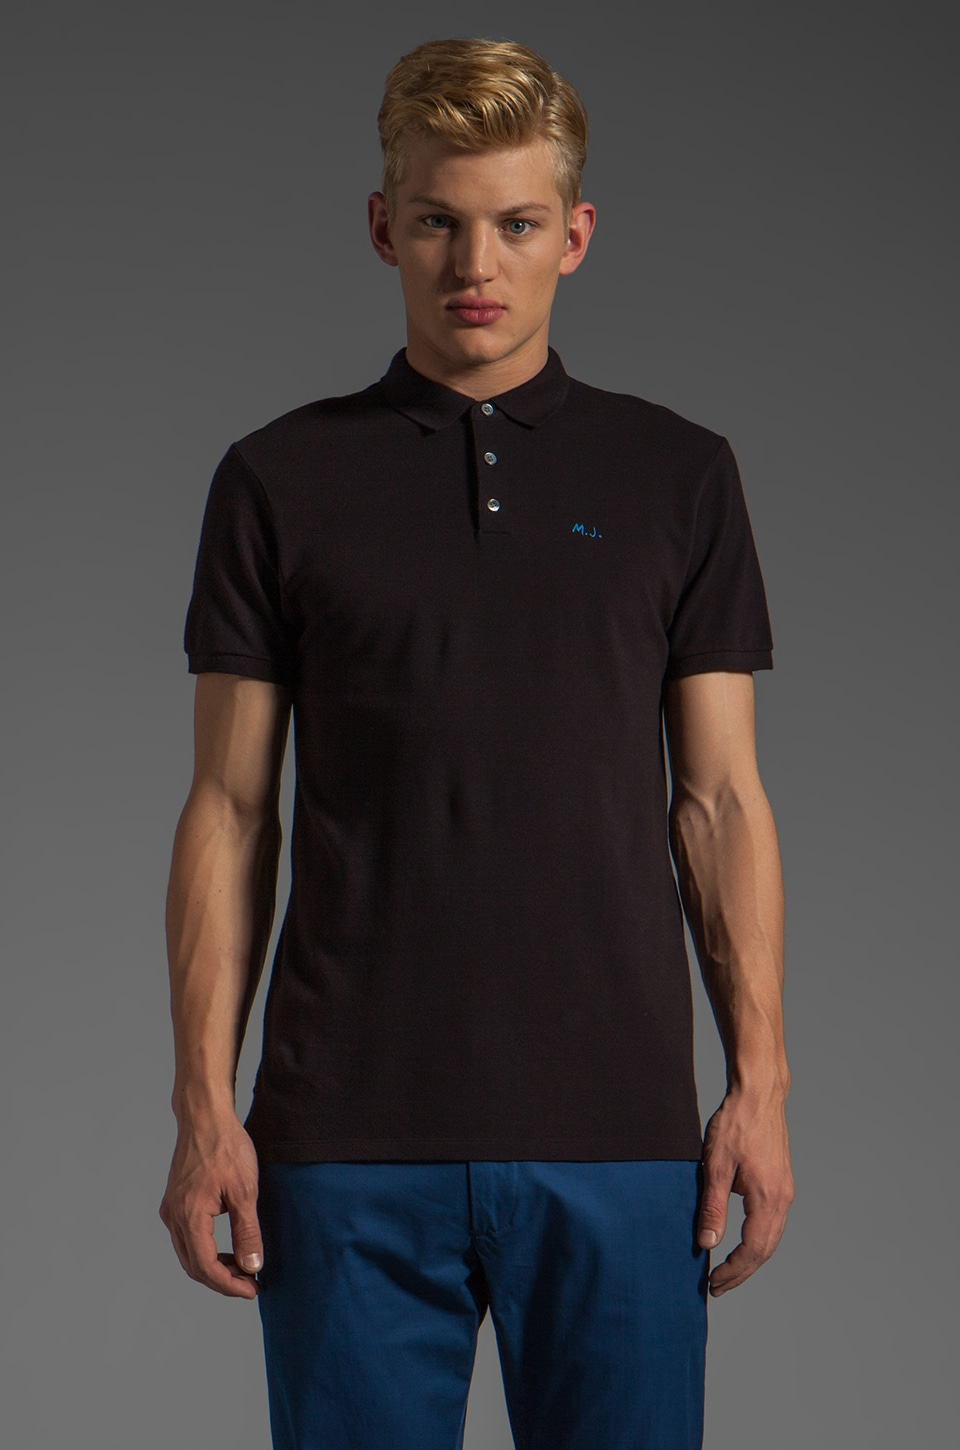 Marc by Marc Jacobs Logo Polo in Black